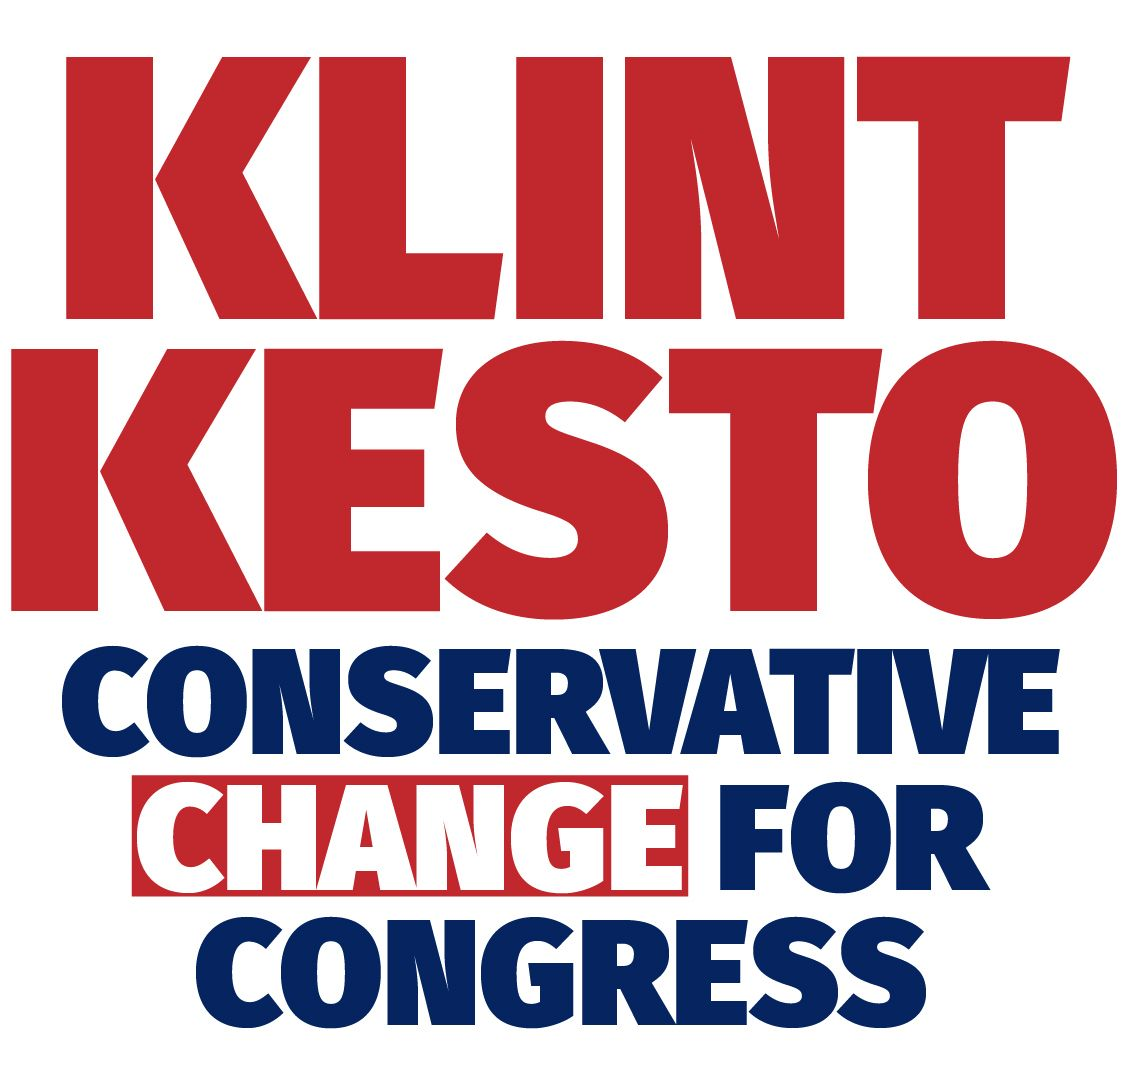 Kestocongress